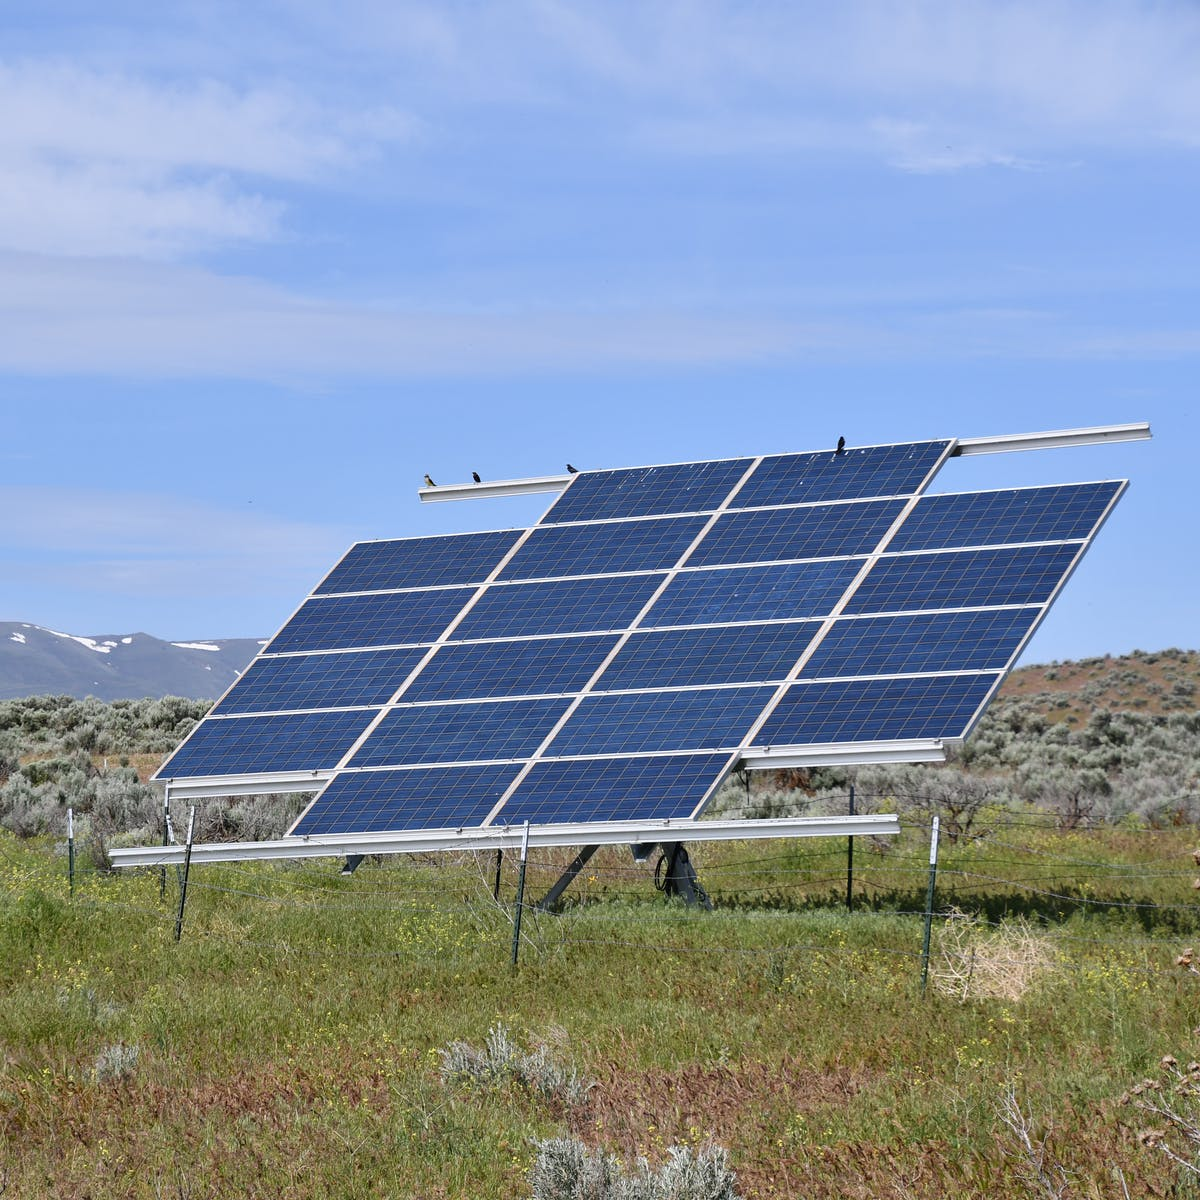 Off-Grid Solar Energy Use Is About to Explode Thanks to These Key Regions